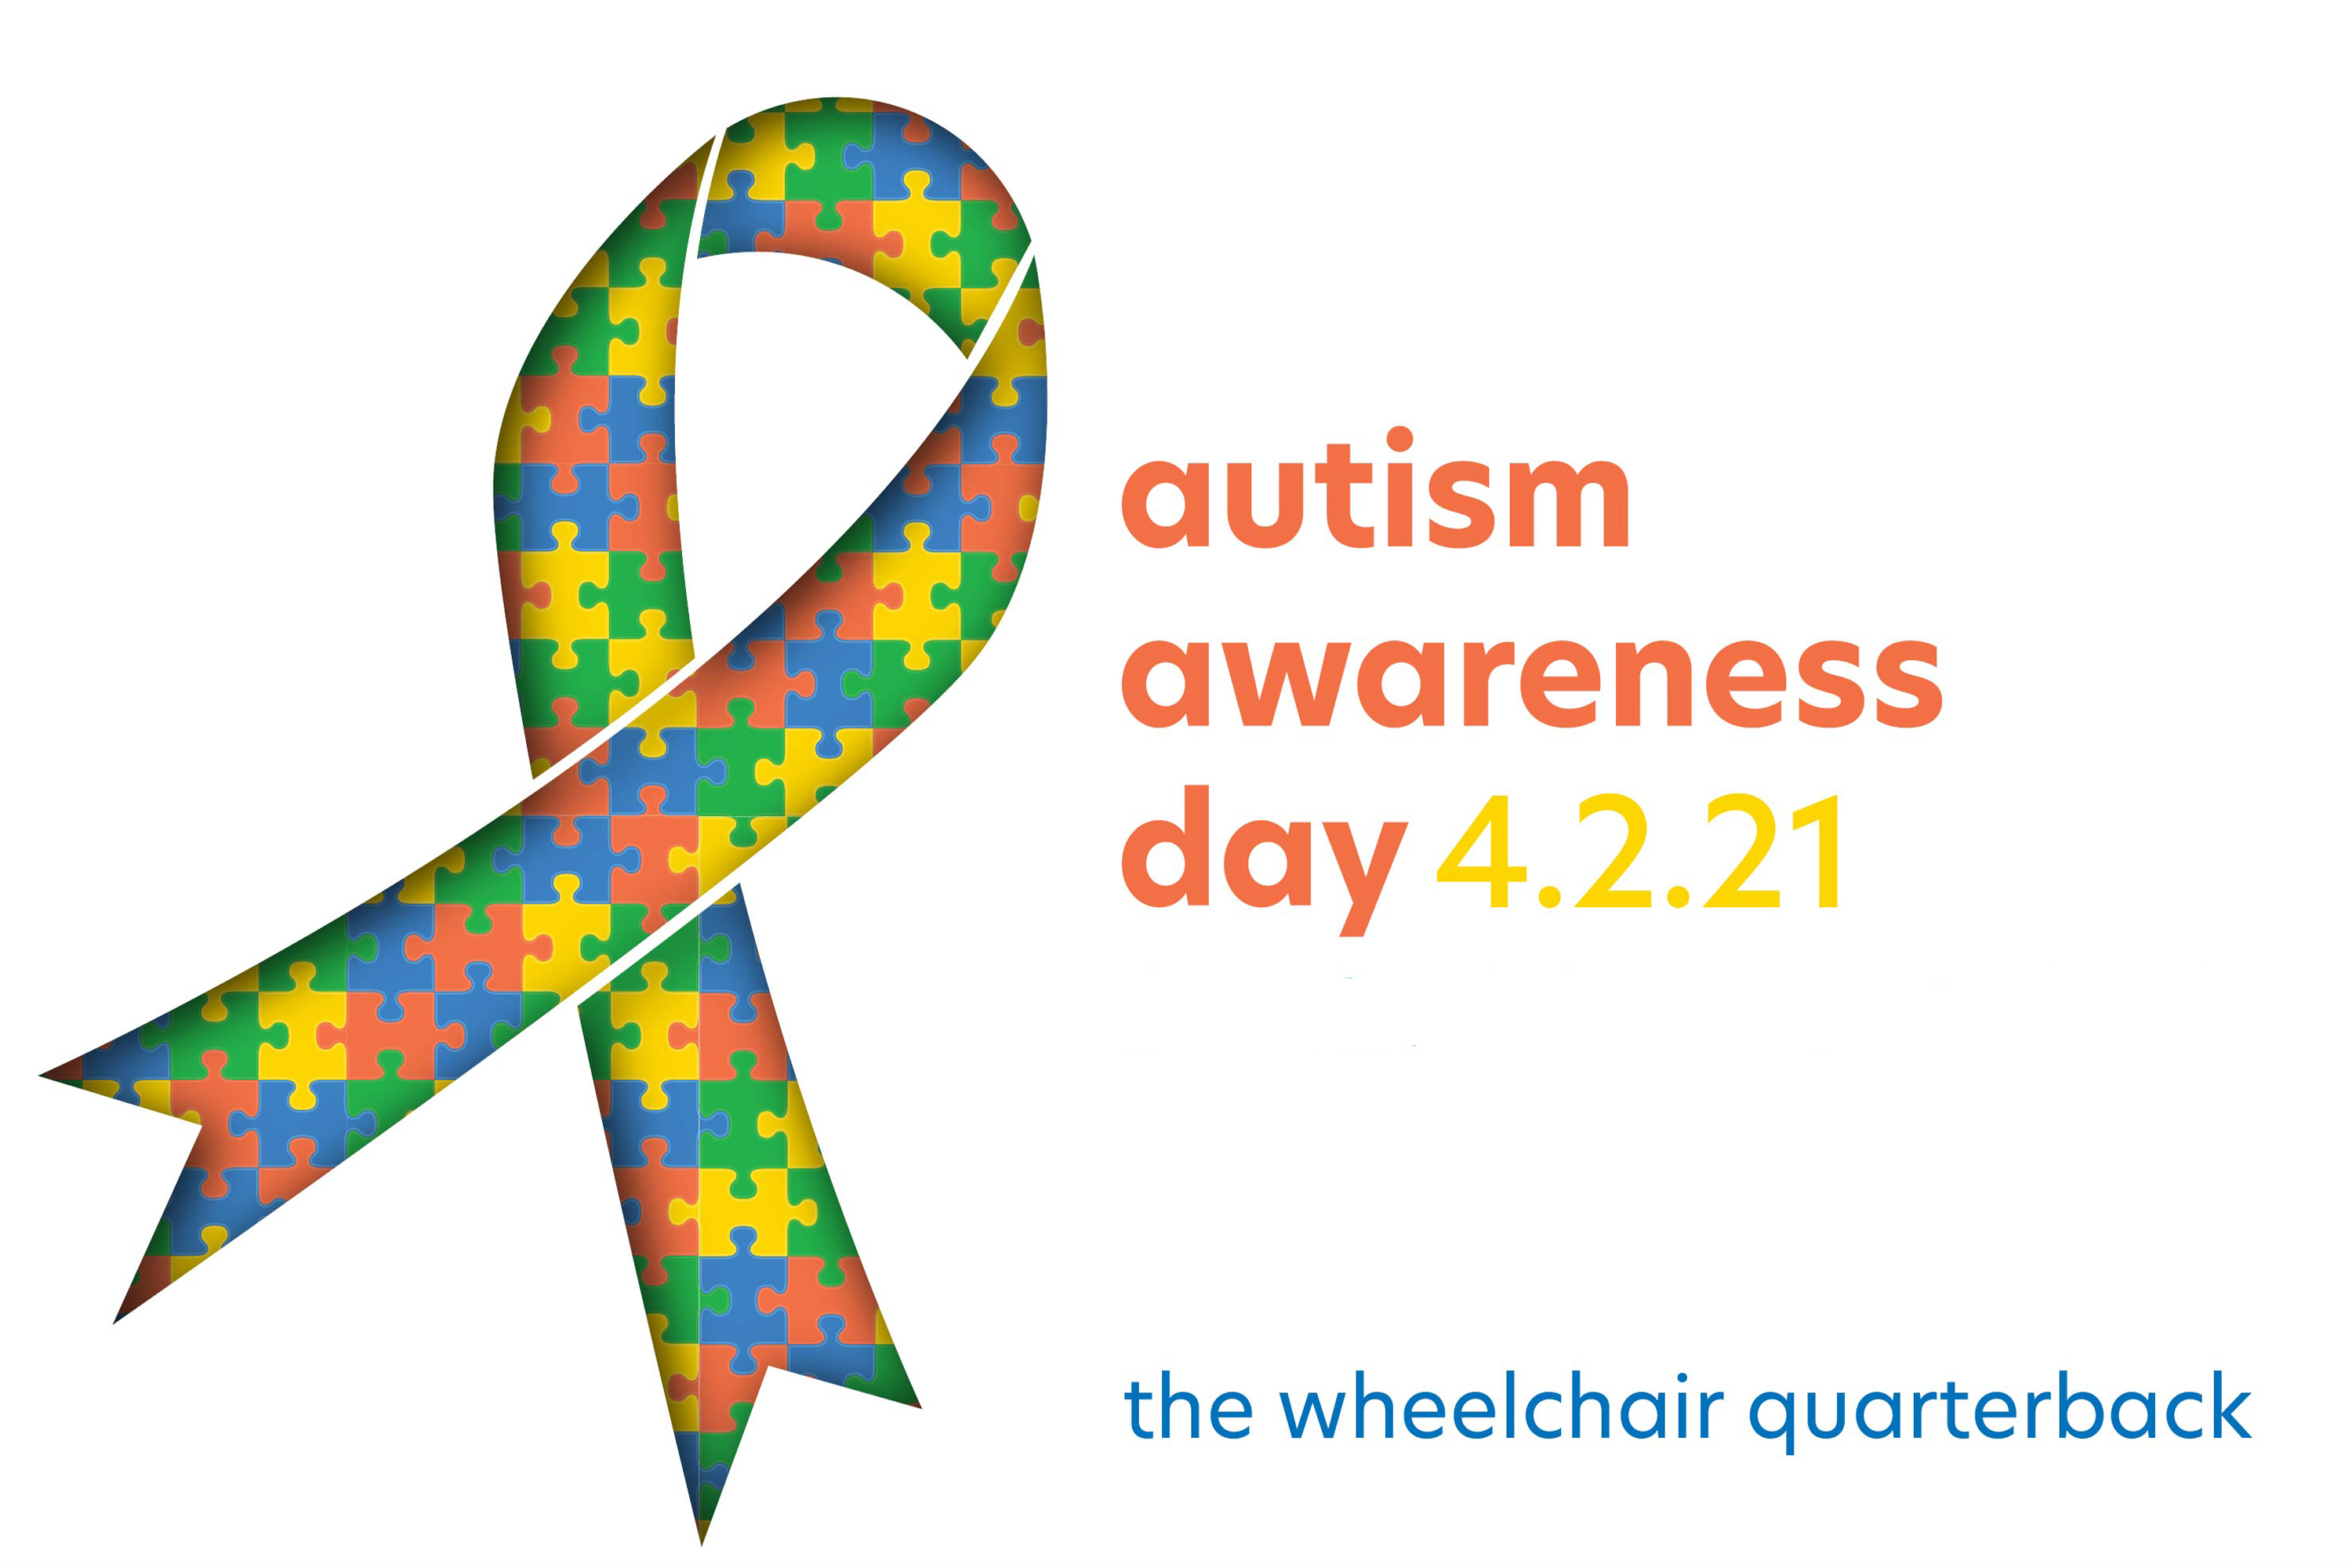 April 2, 2021 is Autism Awareness Day